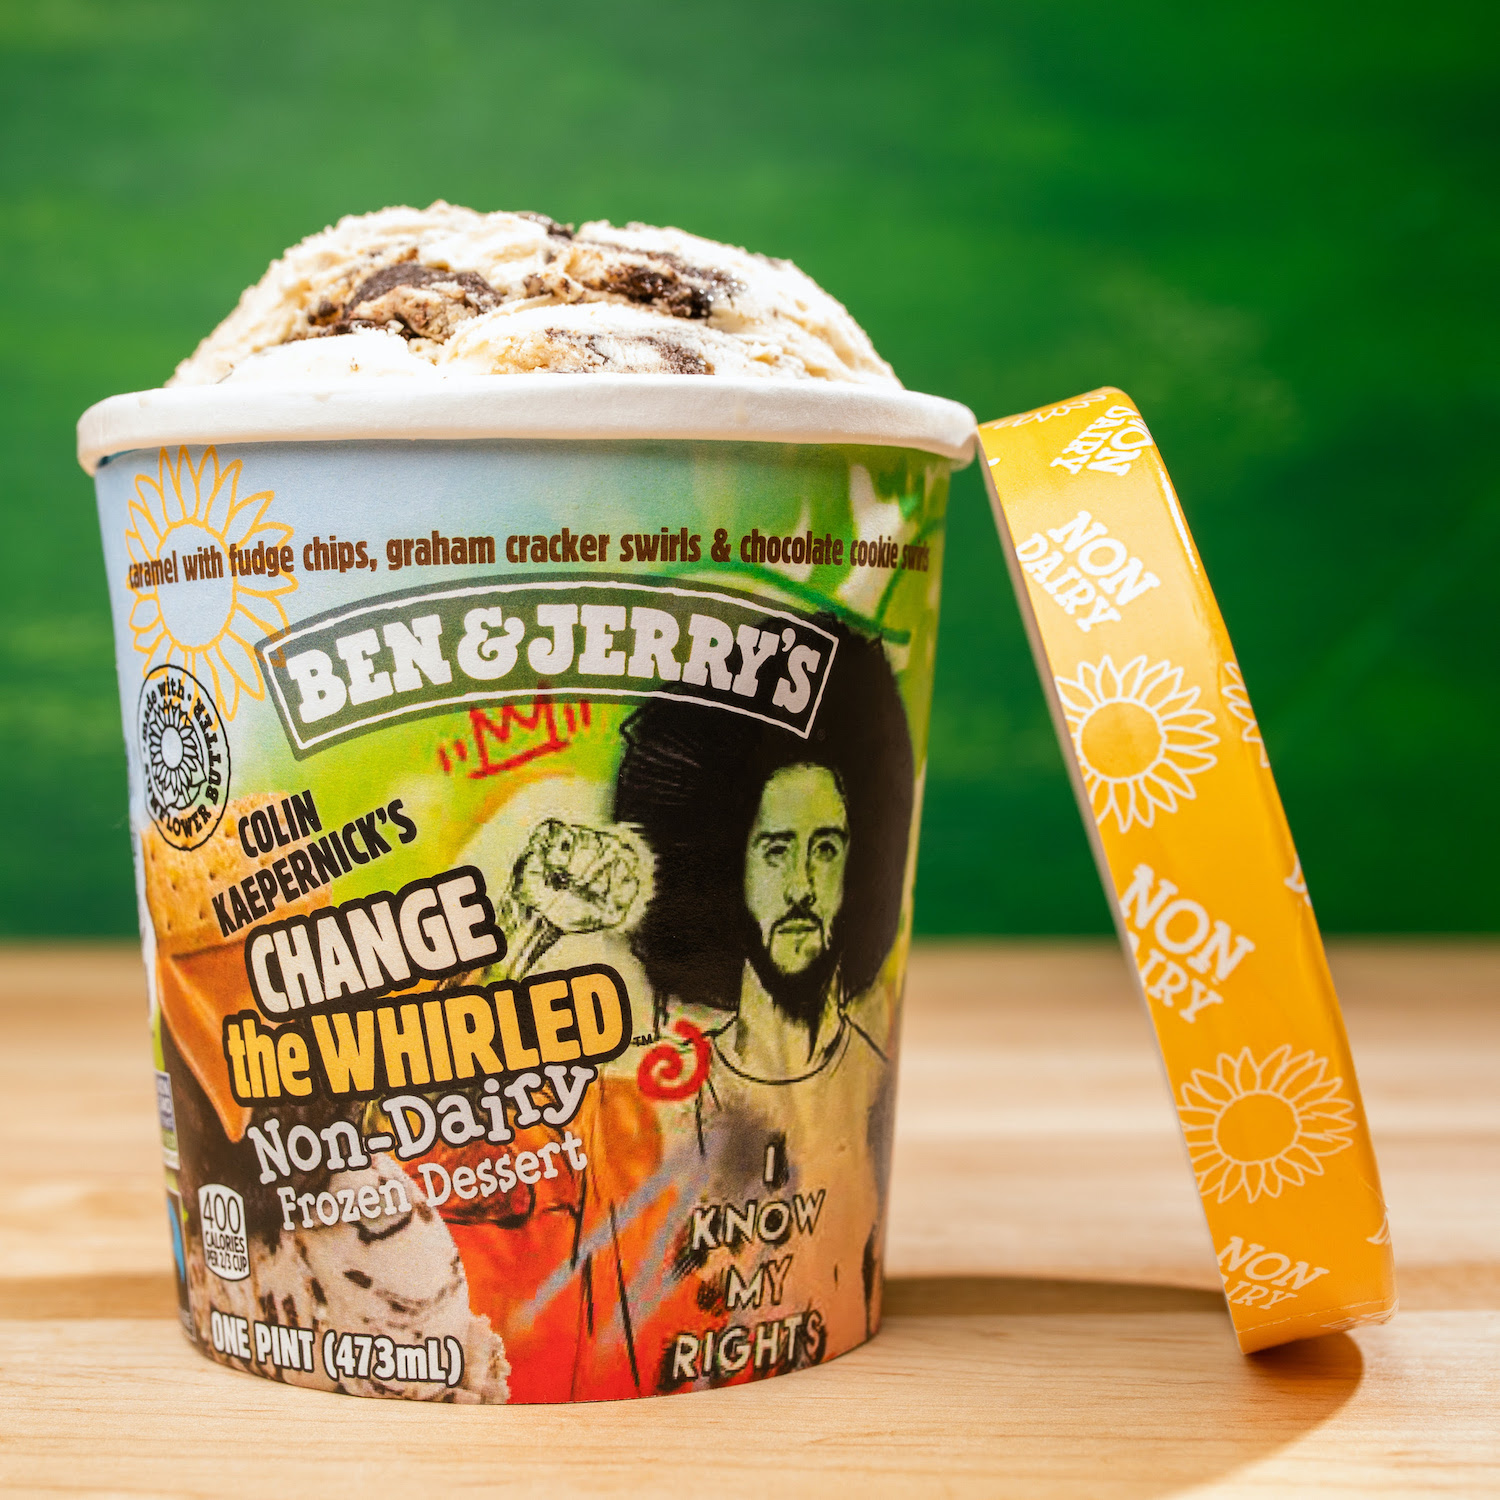 Change the Whirled Colin Kaepernick Ben & Jerry's plant-based ice cream